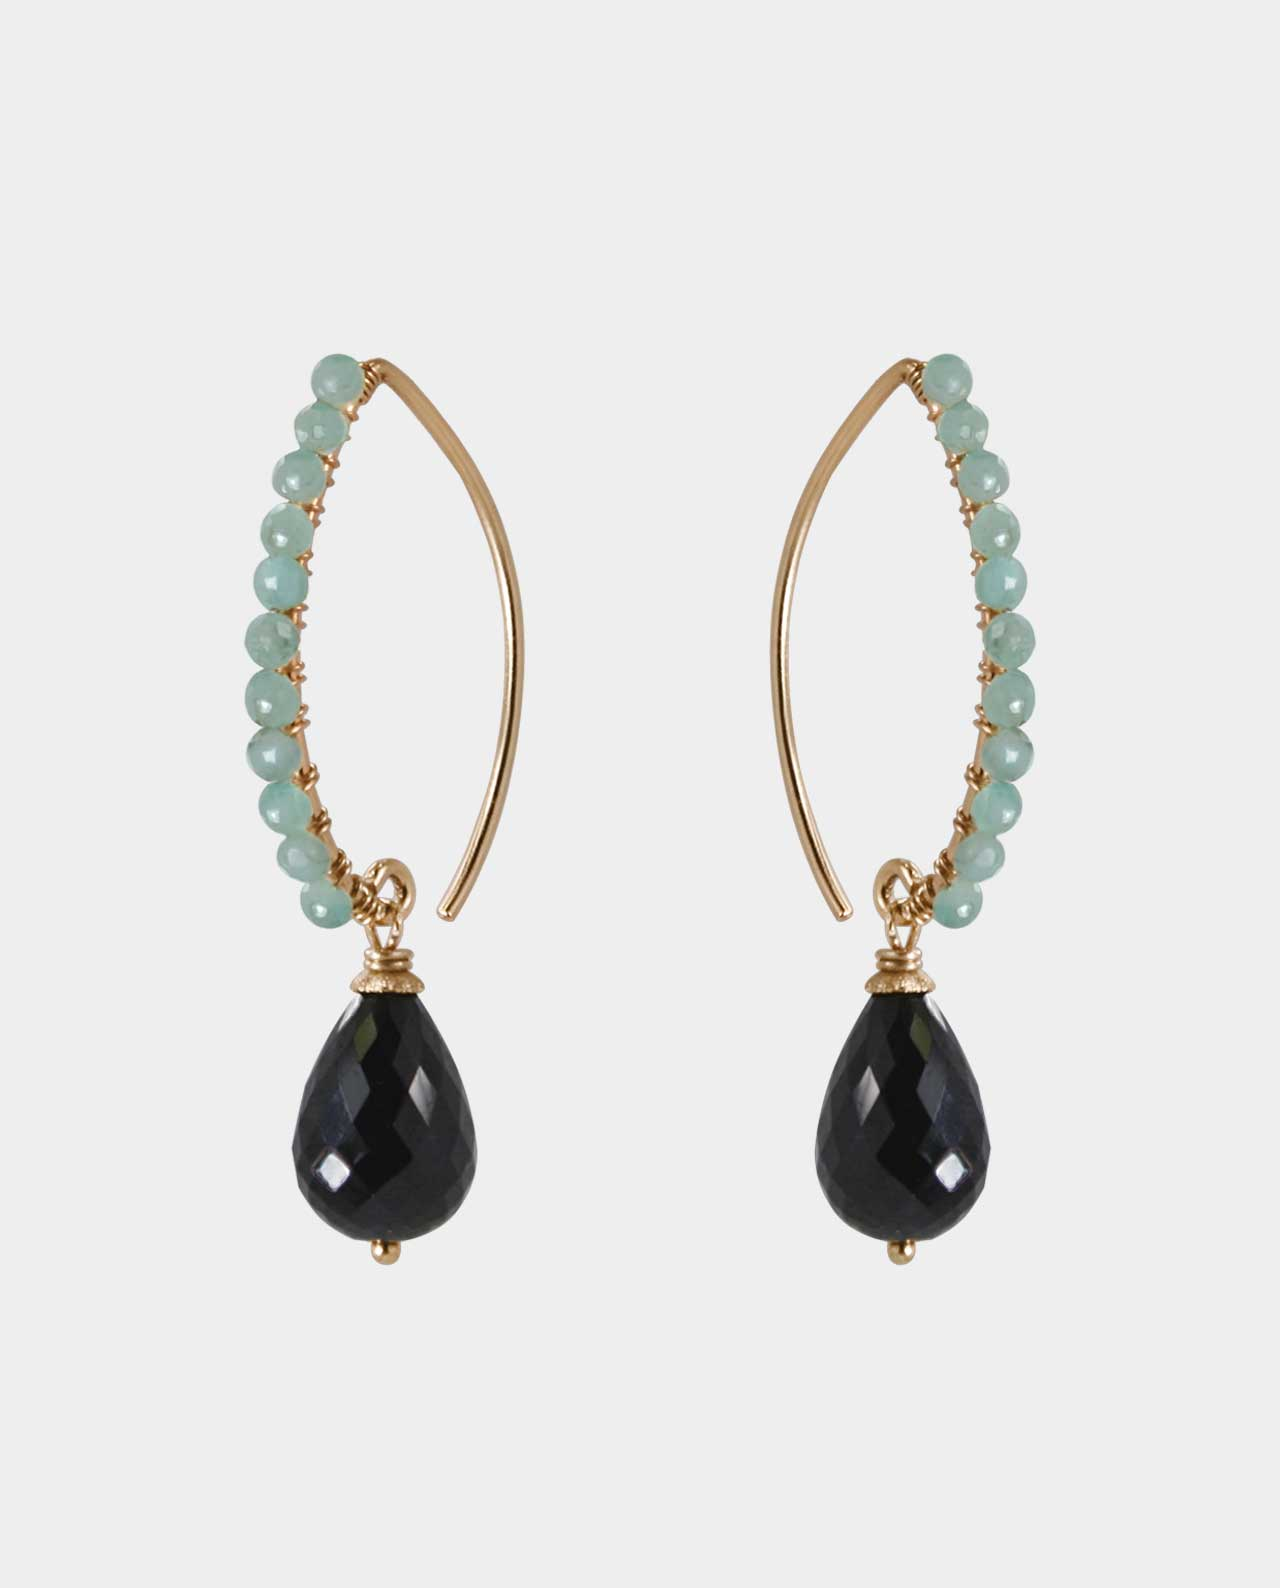 Elegant handmade earrings with light green emeralds and black onyx as stylish jewels of gold that make you look like a queen and highlight your inner beauty and sense of feminine aesthetics